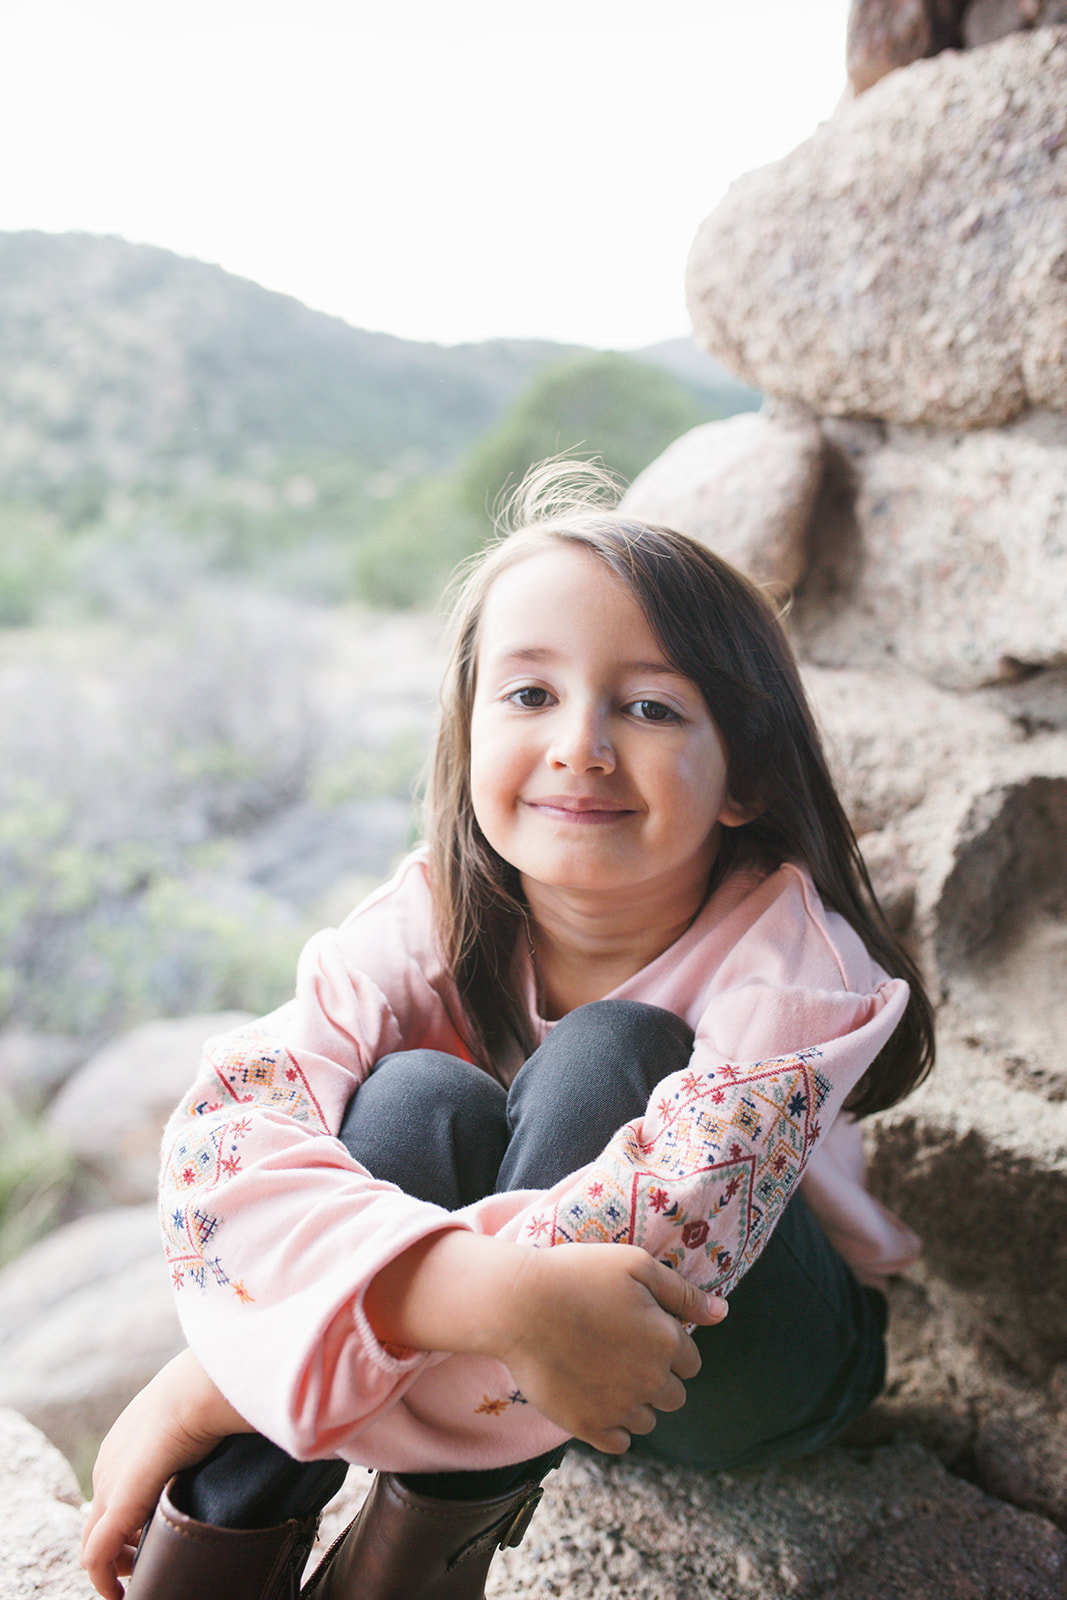 Albuquerque Outdoors Family Photographer_www.tylerbrooke.com_Kate Kauffman_012